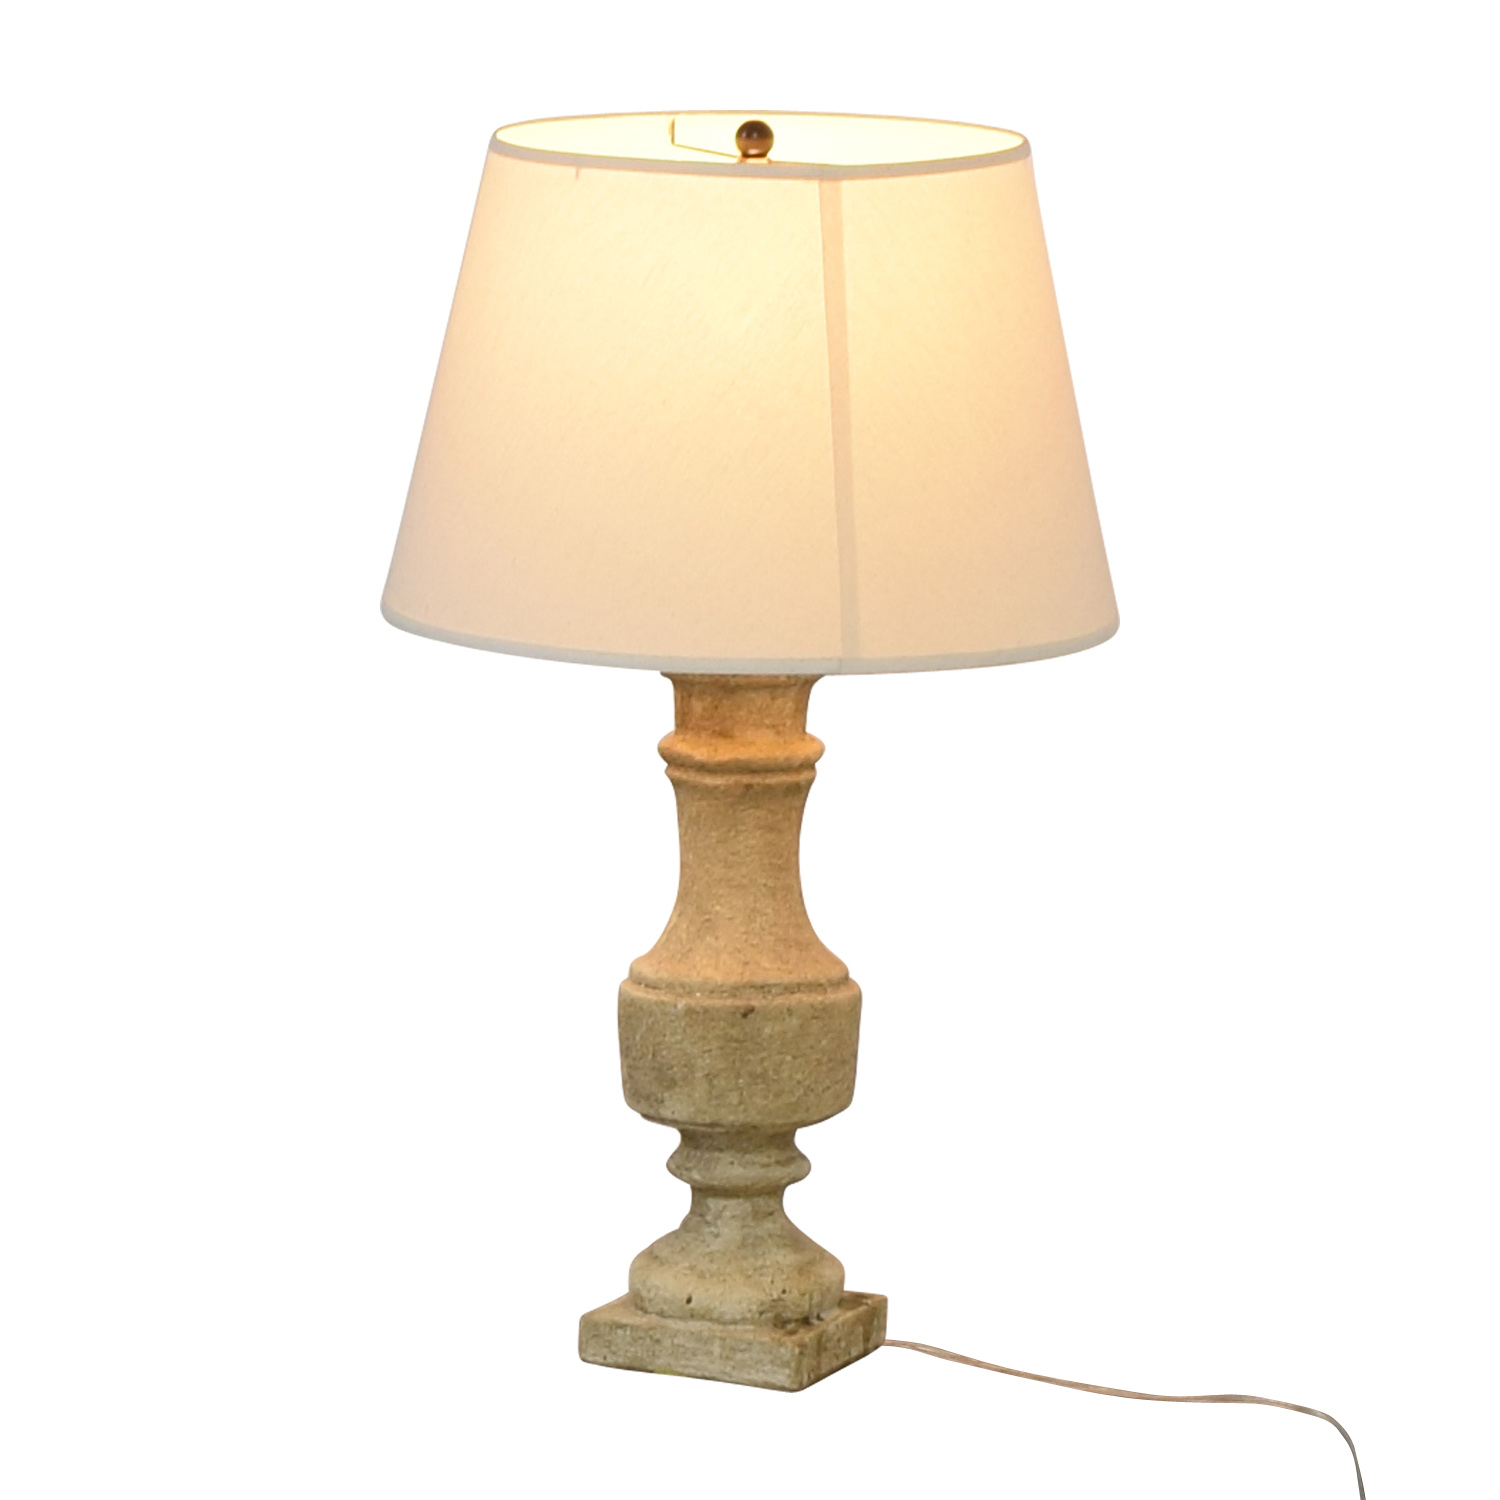 Stone Table Lamp Decor